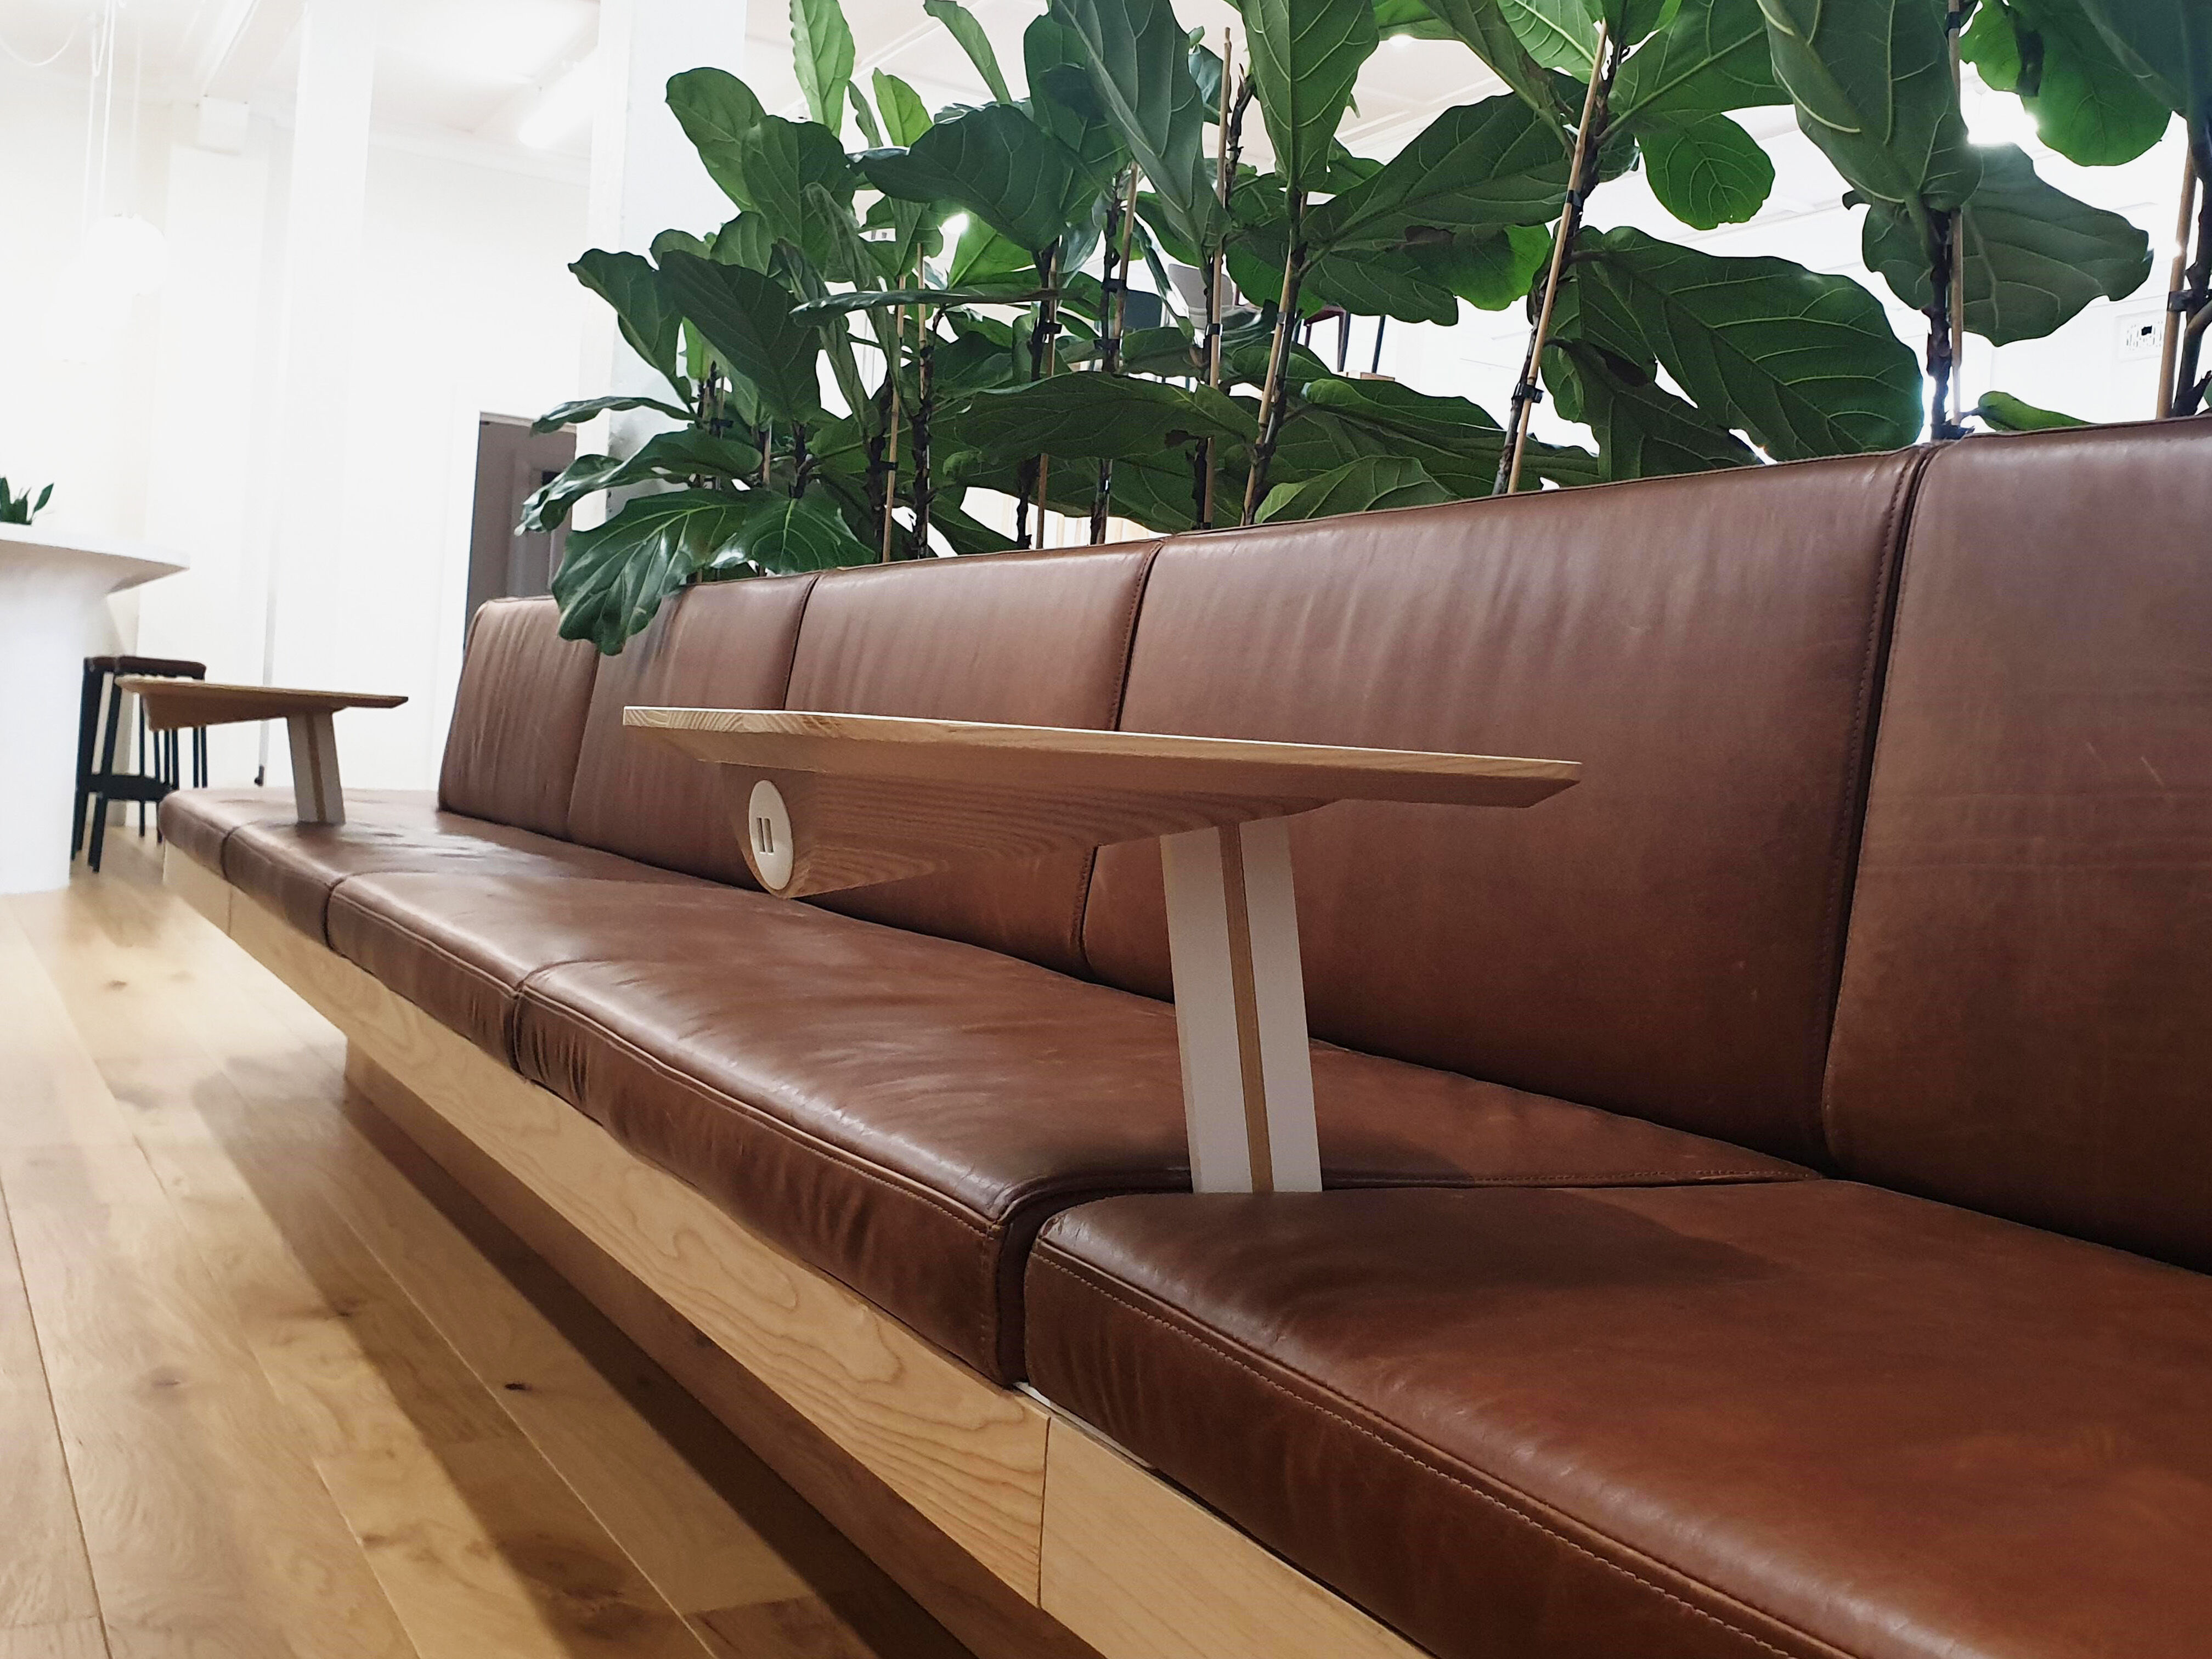 The Banquette Pal integrated into a Ledge Banquette with leather upholstery